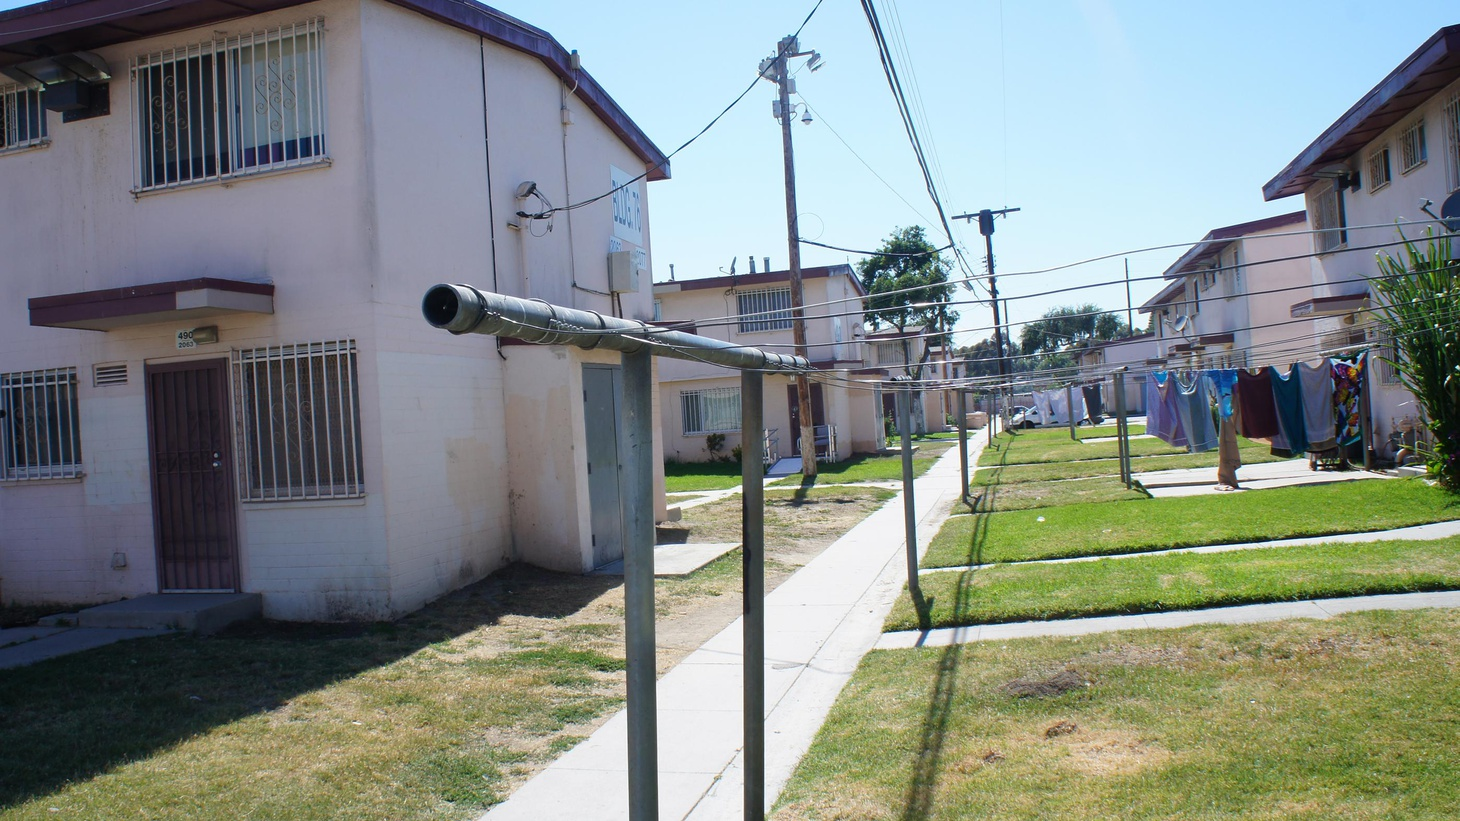 Developers have plans to tear down 700 units of public housing, to upgrade Watts without displacement of the low-income people that comes with gentrification.